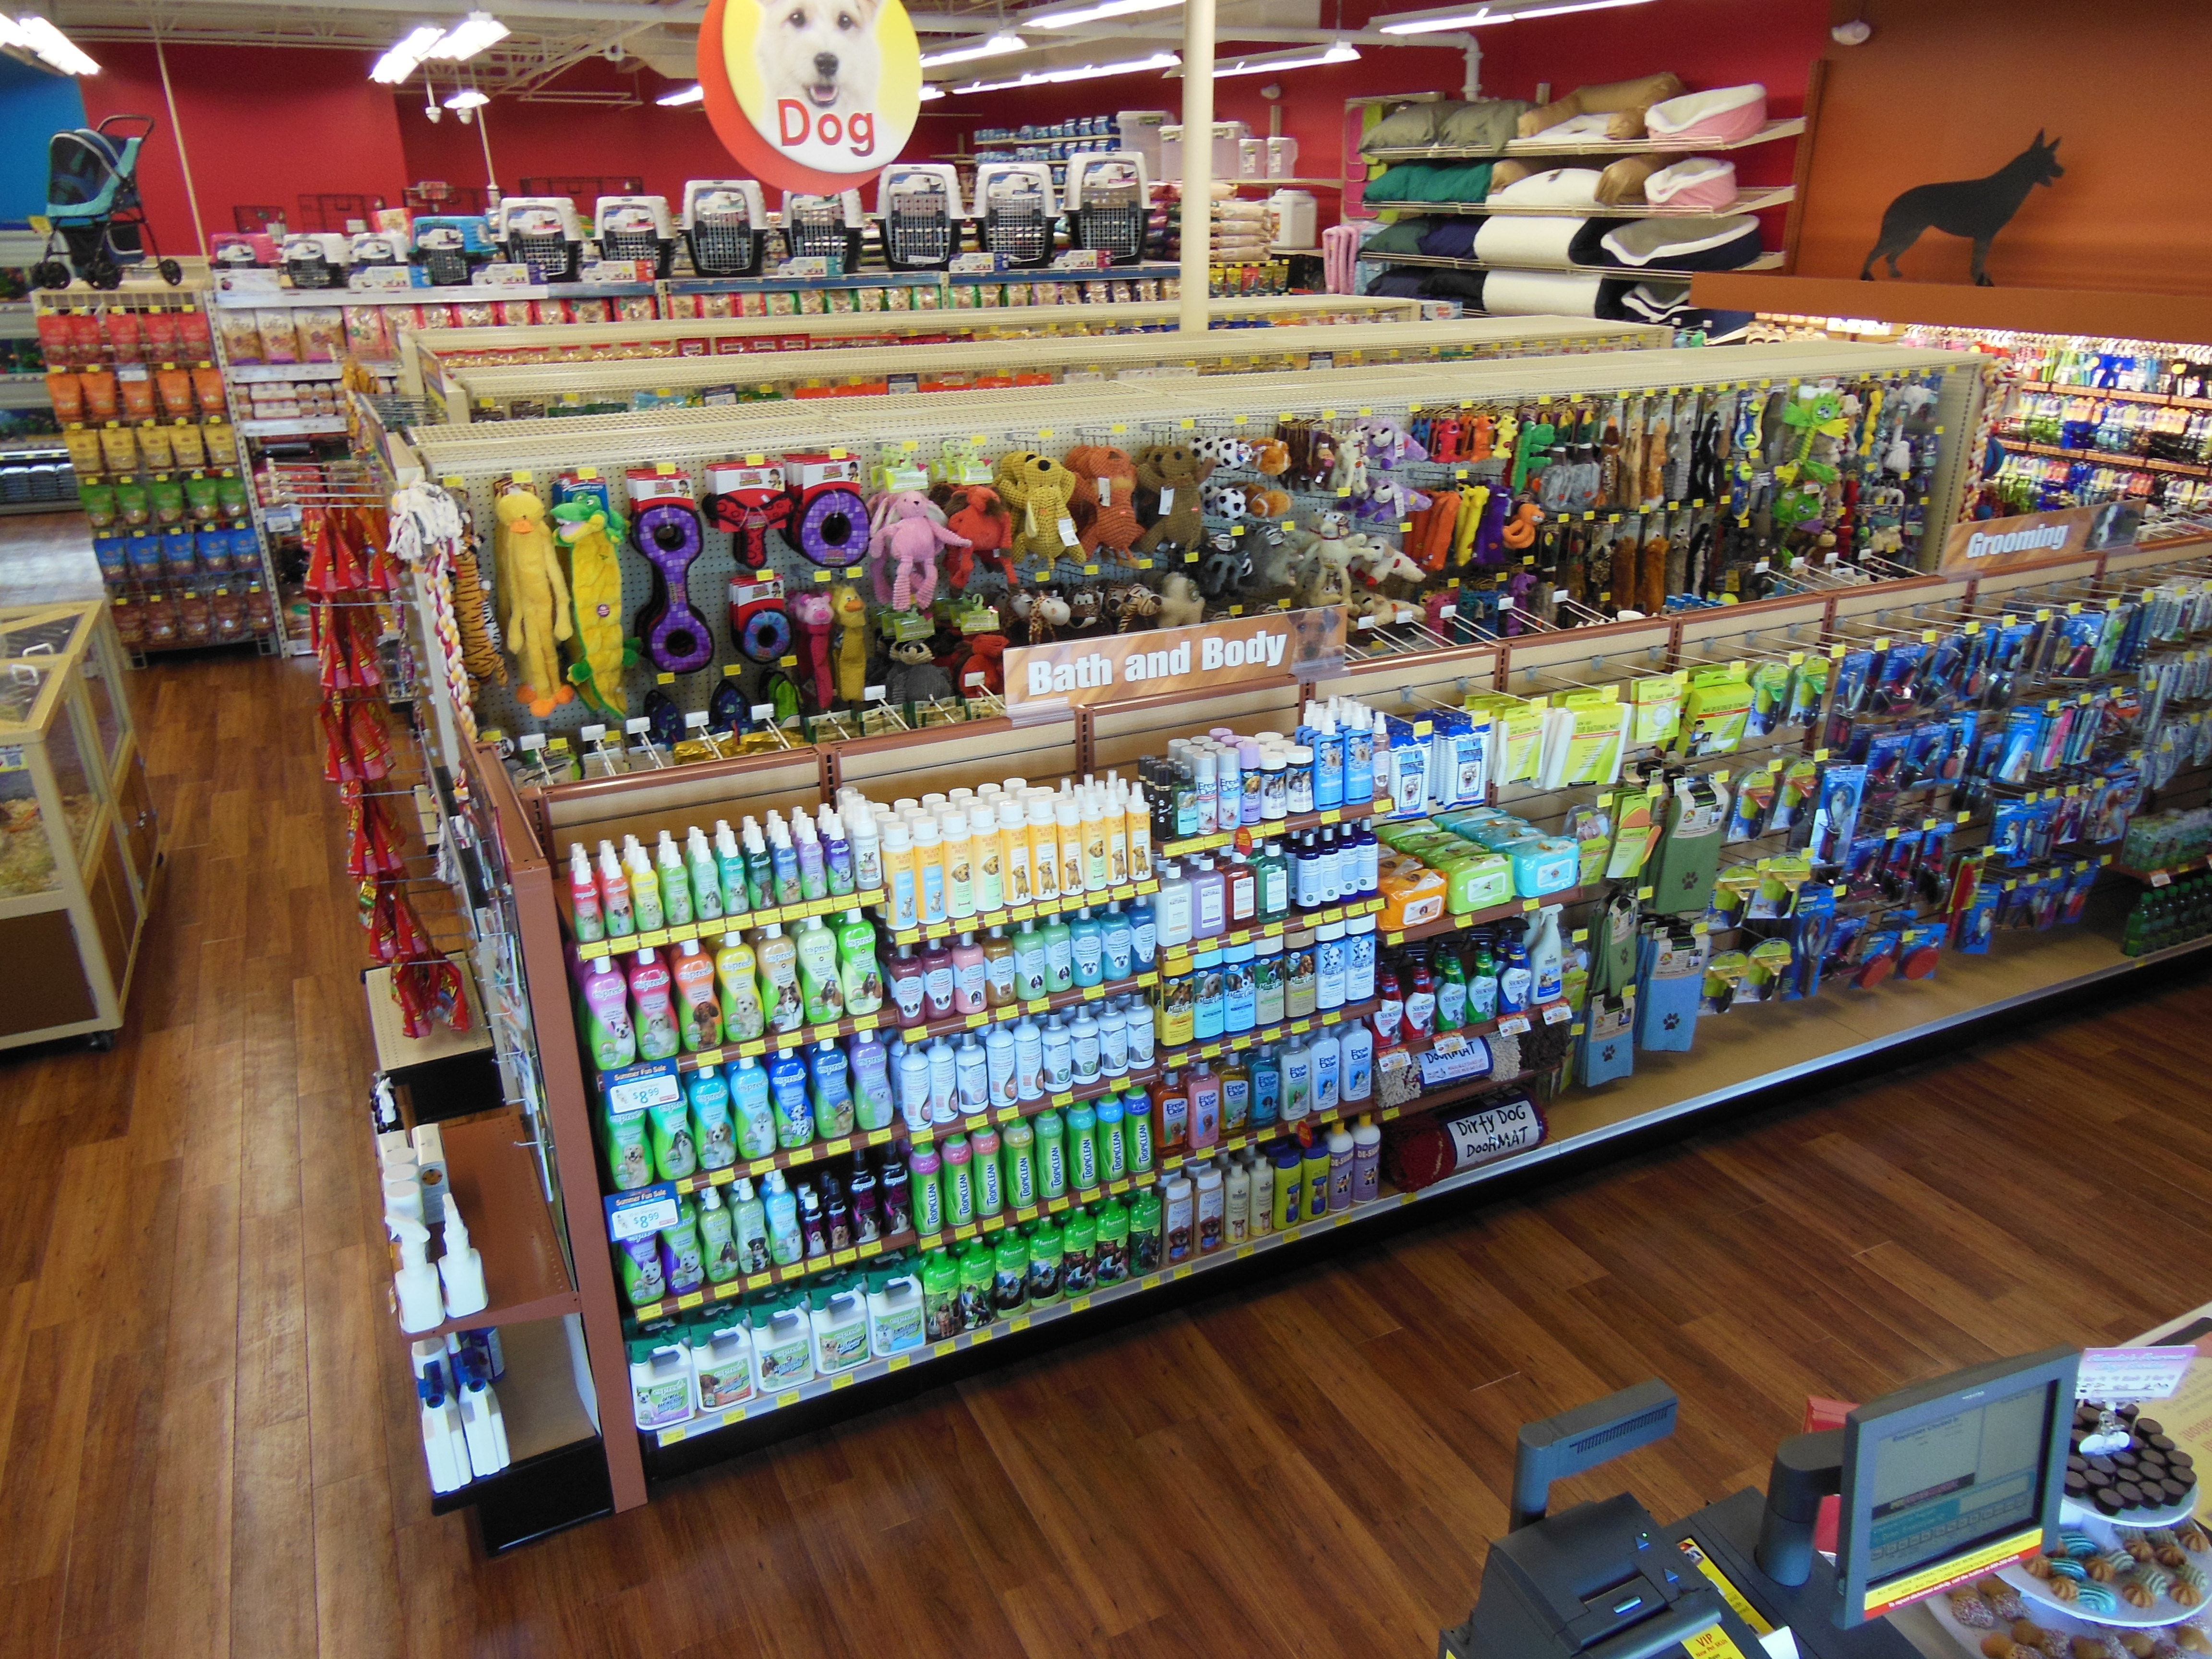 Pet Supermarket - Ridge Rd, New Port Richey, FL - Hours & Store Details Pet Supermarket is situated within easy reach in Ridge Plaza Shopping Center at Little Rd, within the north-east part of New Port Richey (not far from Scout Lake and King Helie Adult Treatment Center).